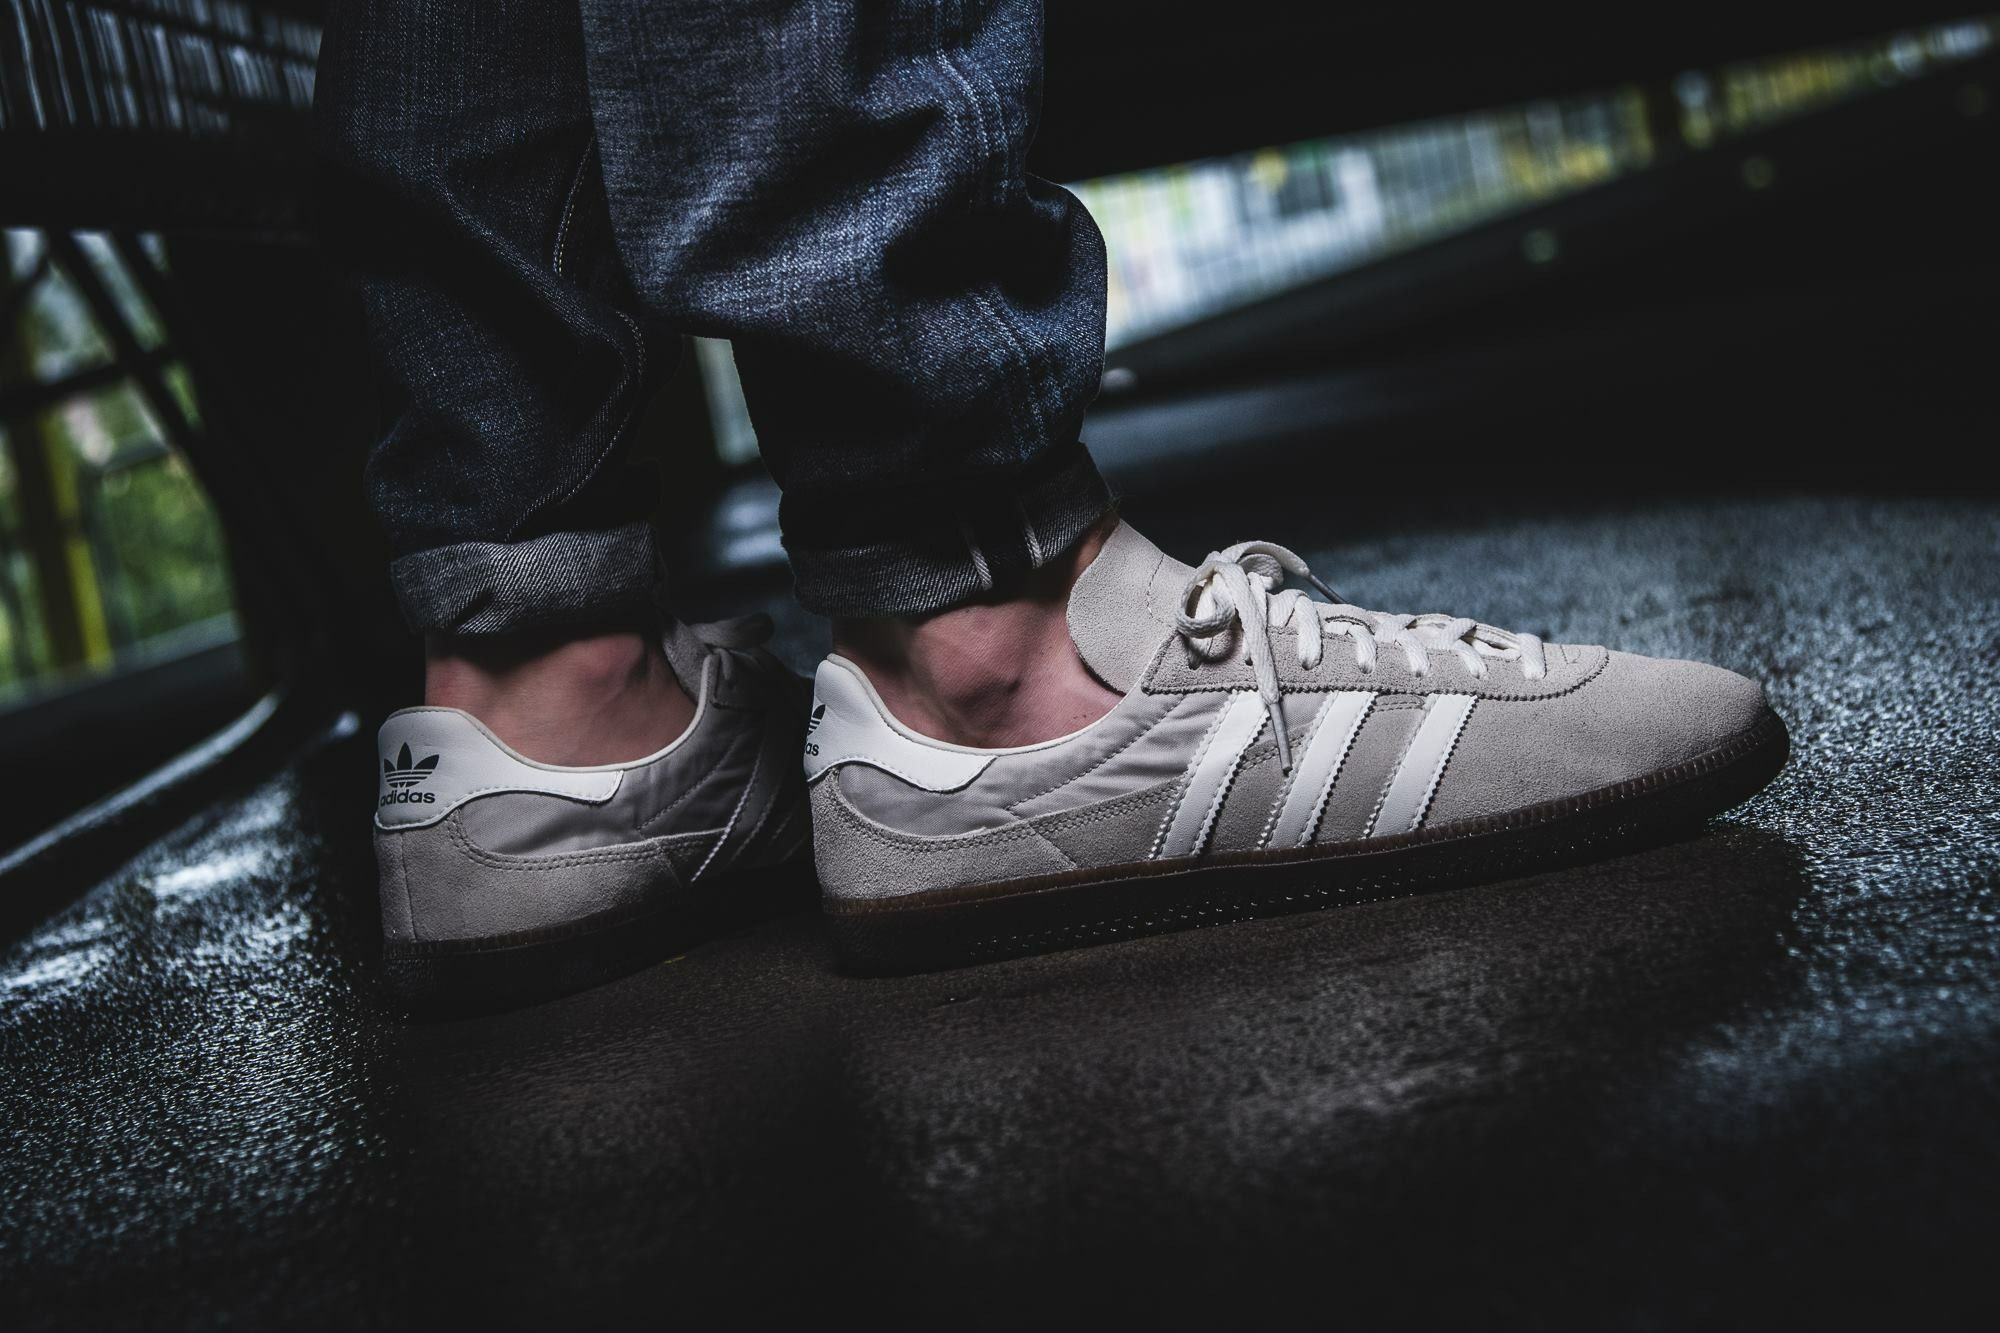 adidas Originals GT Wensley SPZL (With images) | Adidas